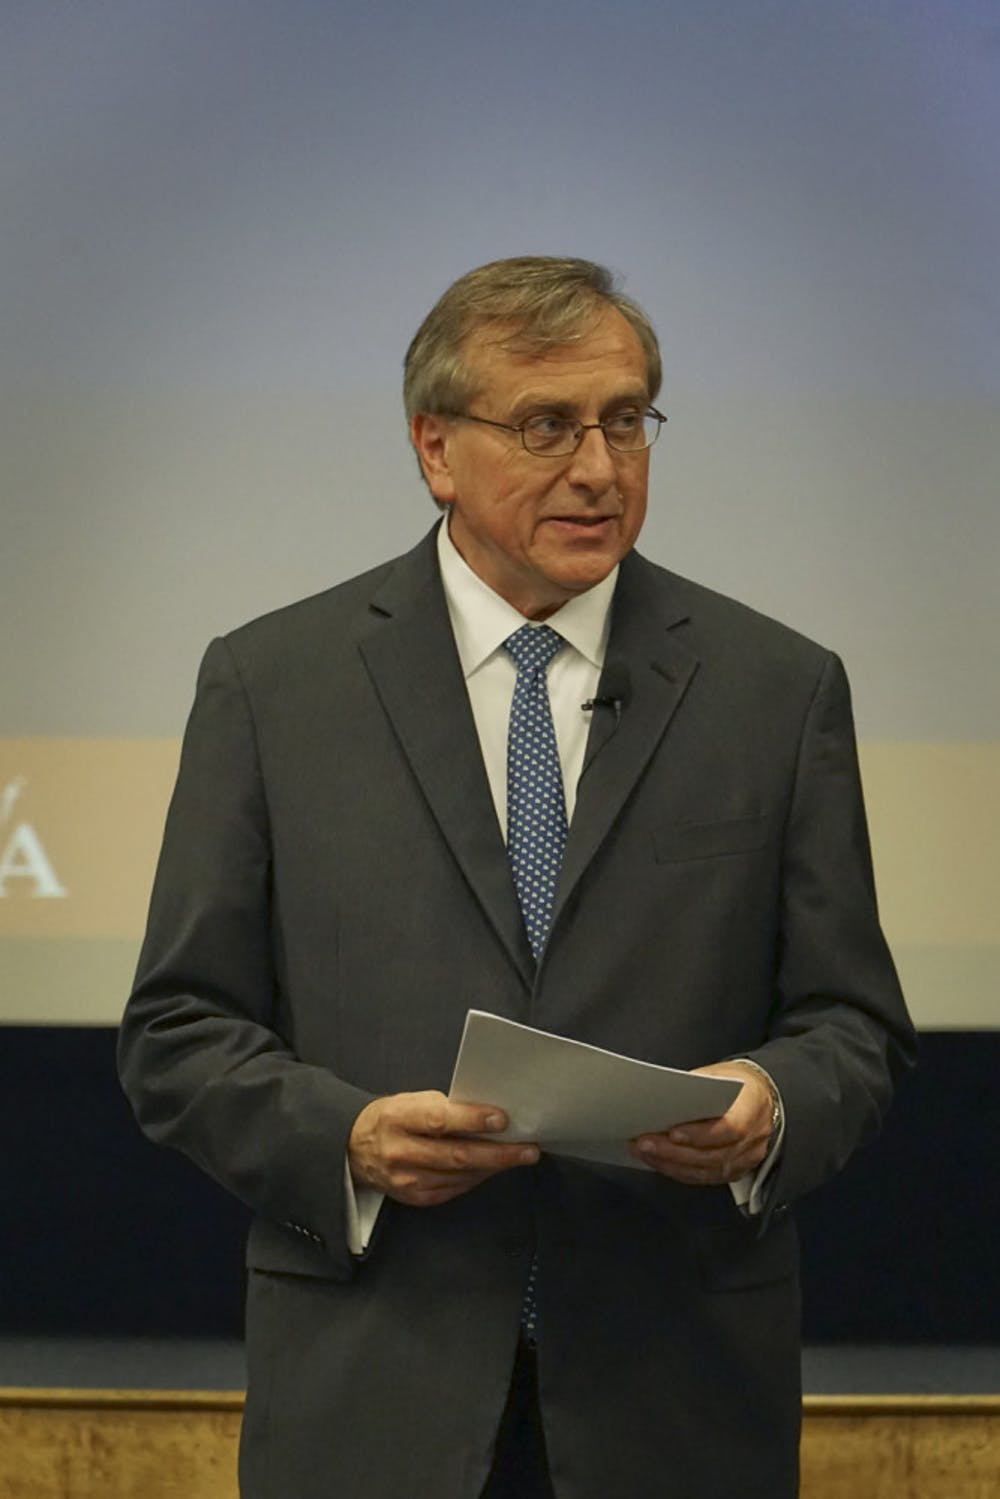 <p>UF President Kent Fuchs delivers his State of the University address in the Reitz Union Auditorium on Sept. 24, 2015. He plans to increase diversity and research opportunities at UF.</p>